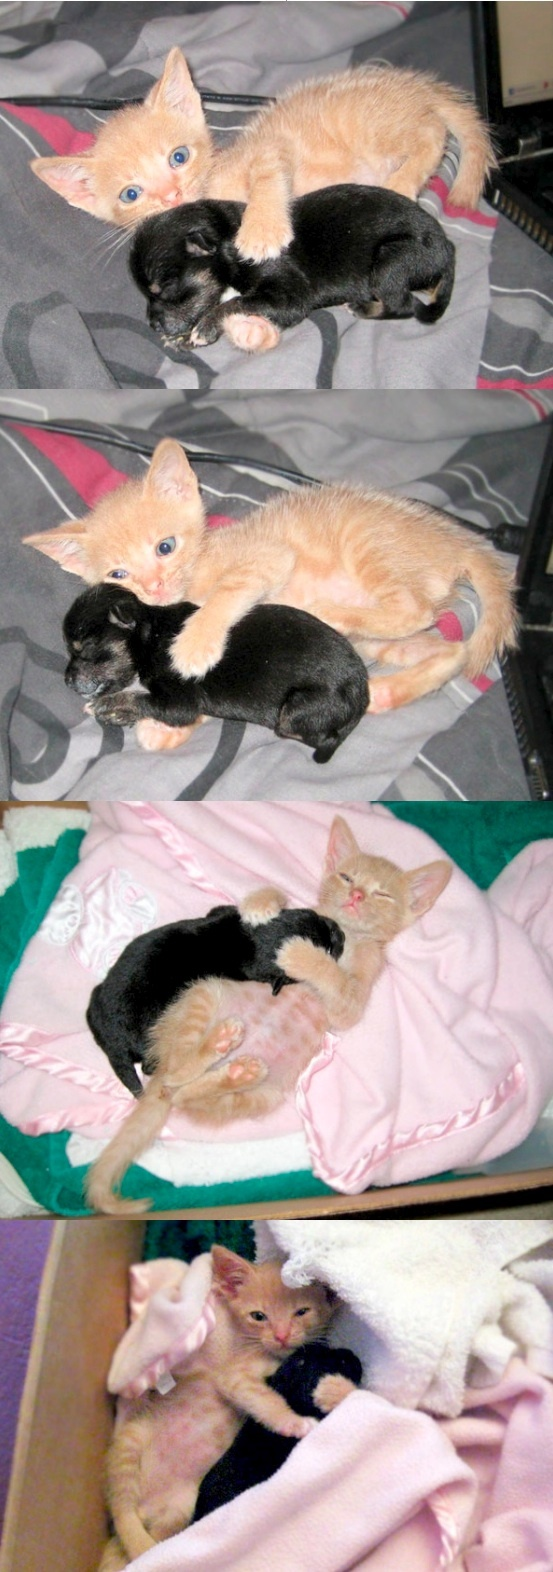 """""""My puppy!""""  [ Little ginger foster kitten named Cheech was introduced to a teeny tiny five-day old orphaned chihuahua puppy named Casanova. Cheech took to the little puppy, immediately grooming and cleaning him.The puppy responded to his every touch, snuggling up to his new friend like a pup to his mother. ]"""